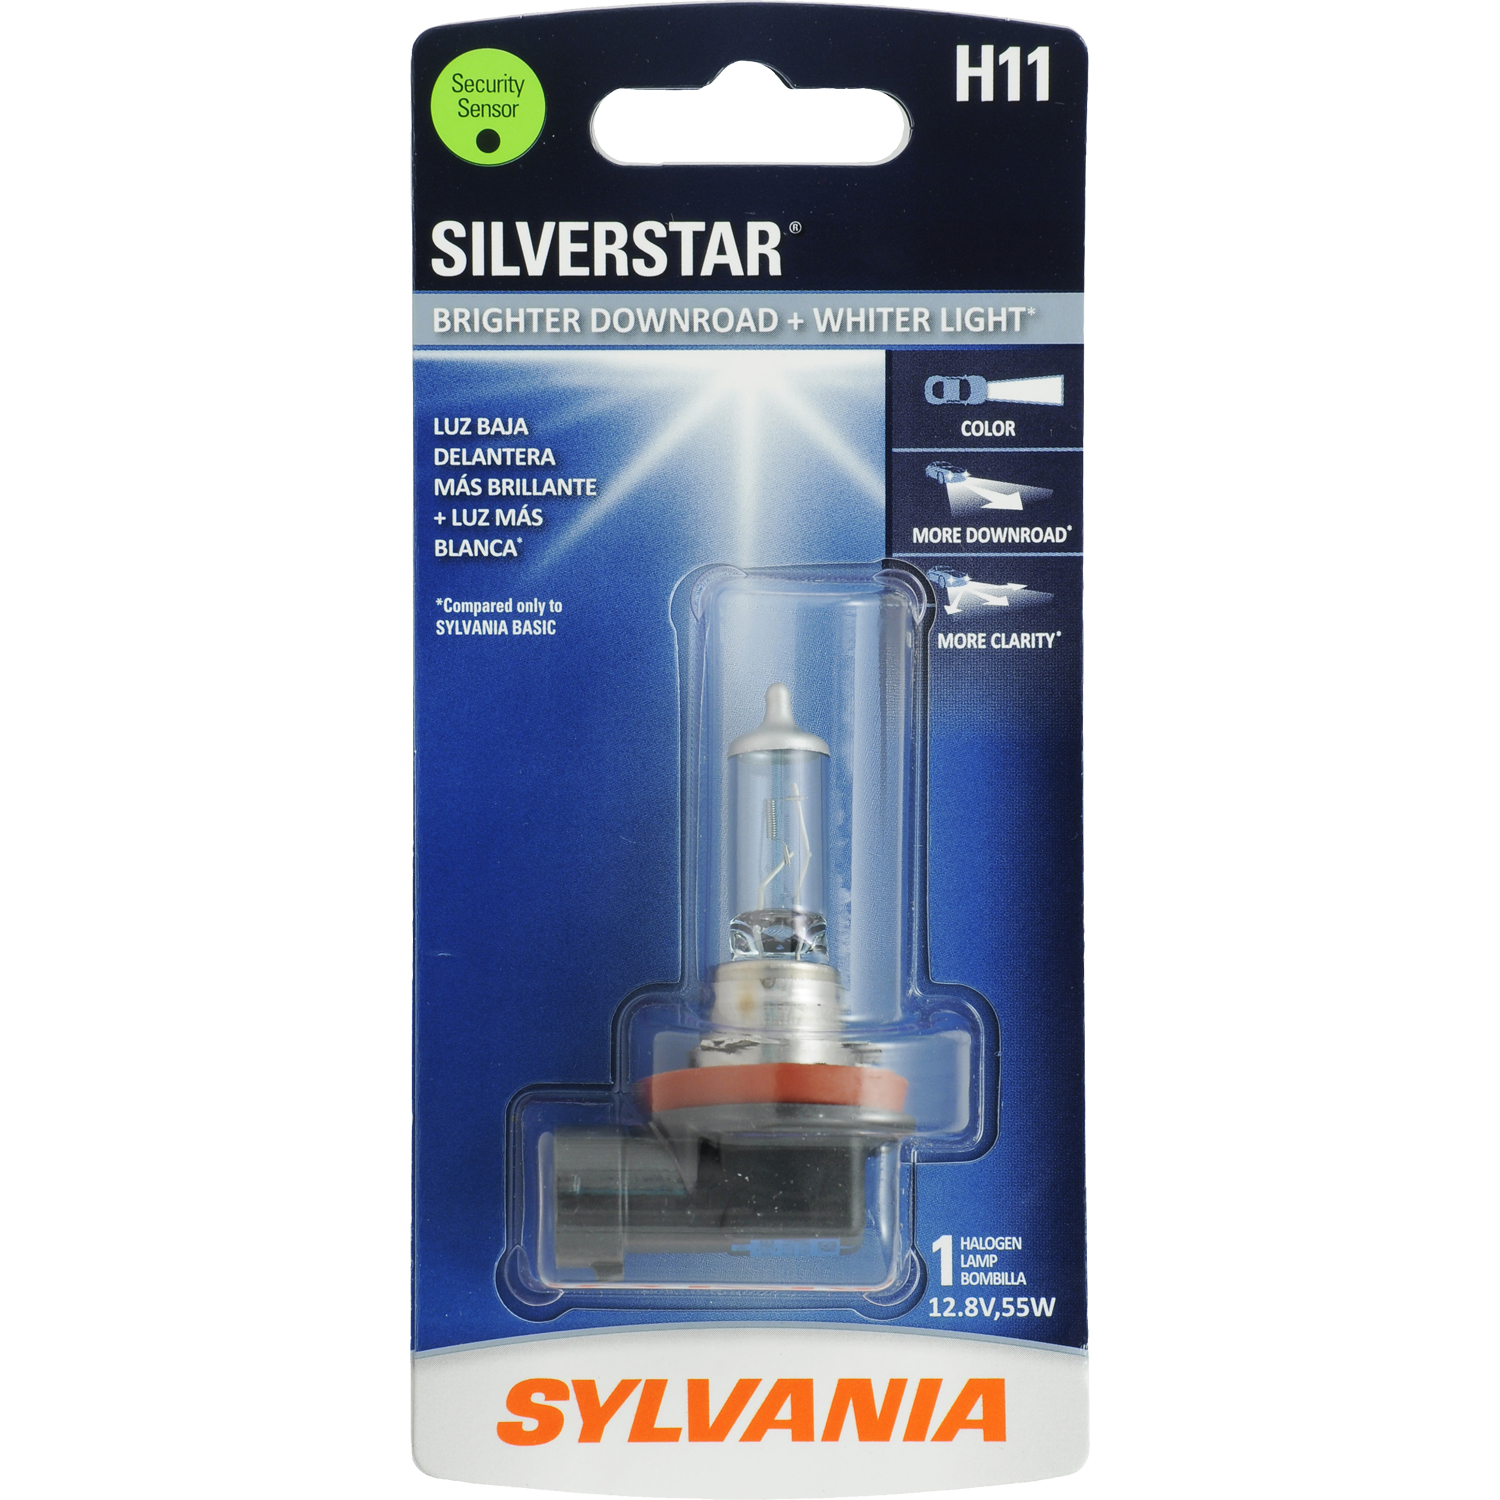 SYLVANIA H11 SilverStar Halogen Headlight Bulb, Pack of 1